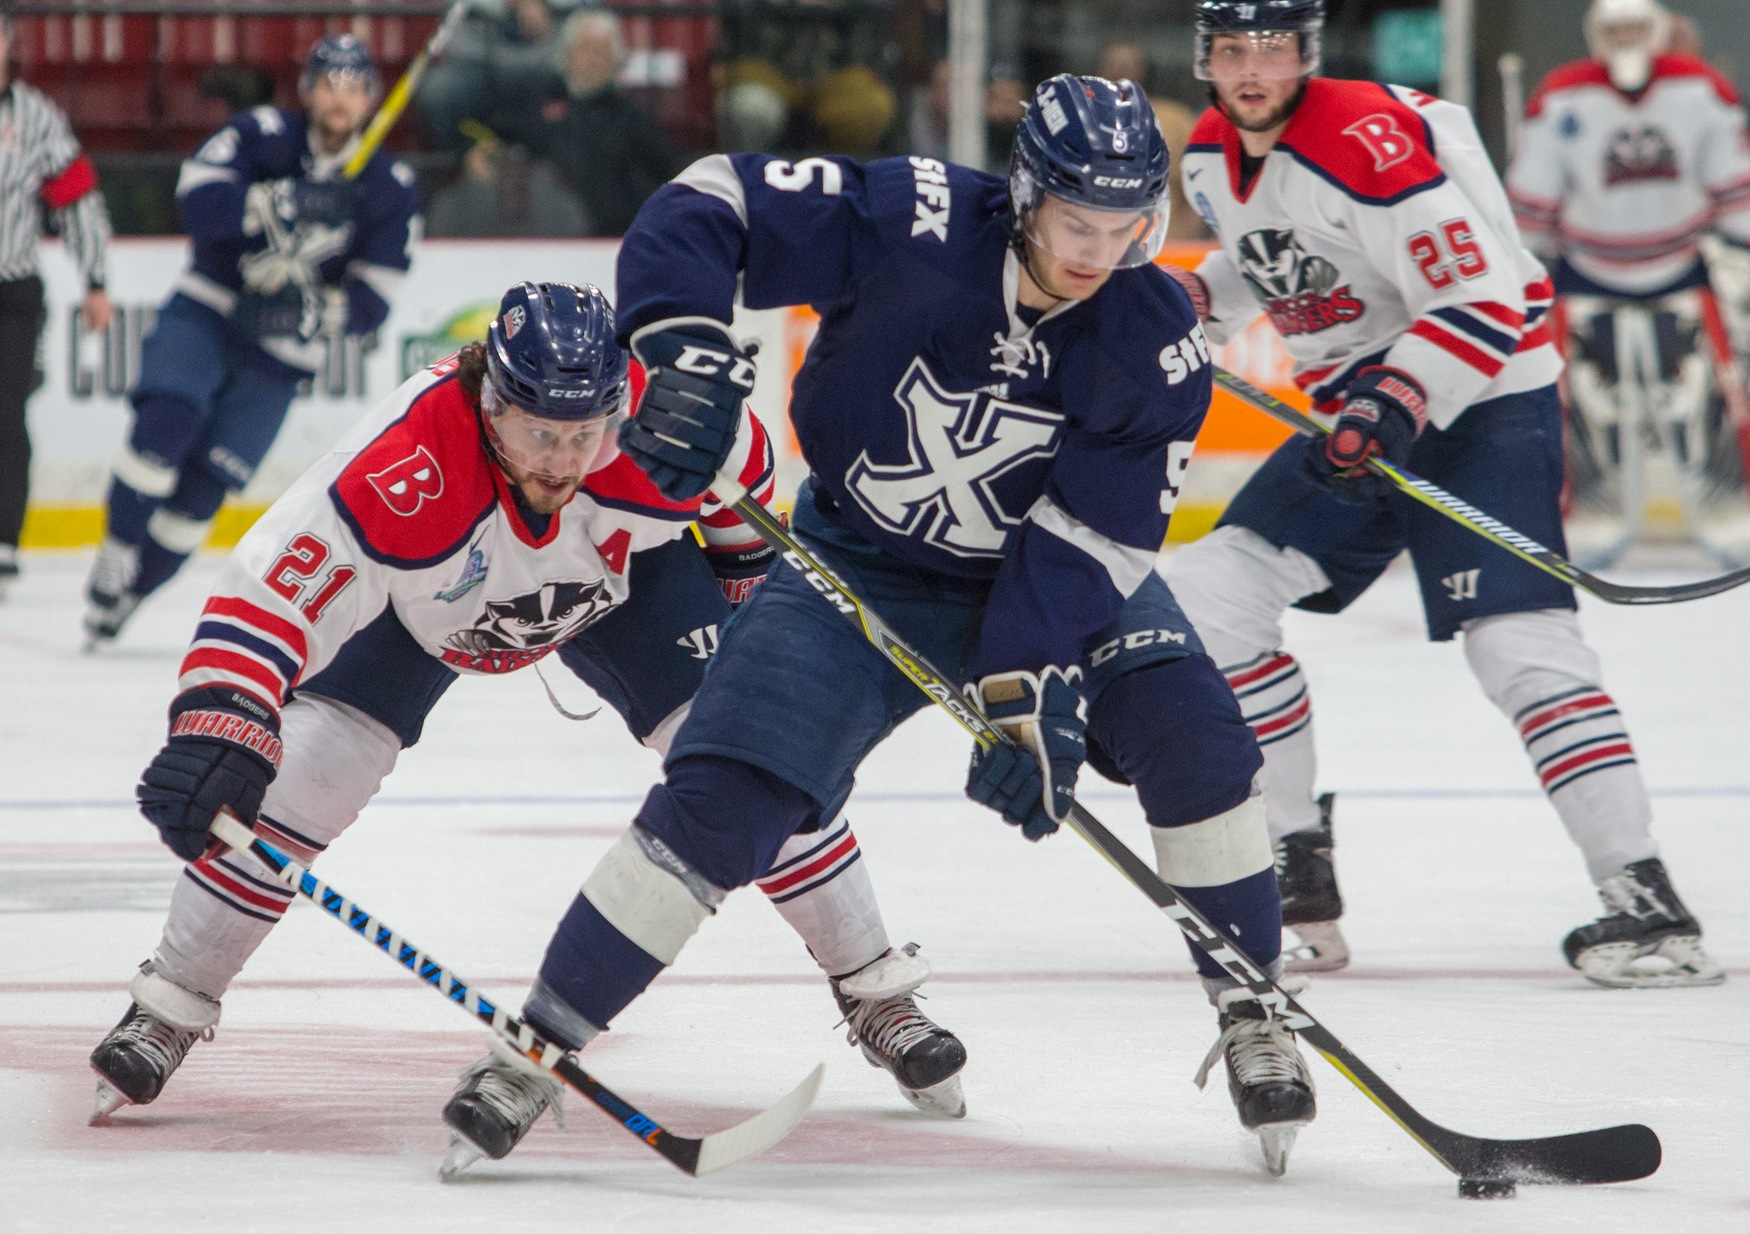 X-Men blueliner inks AHL contract